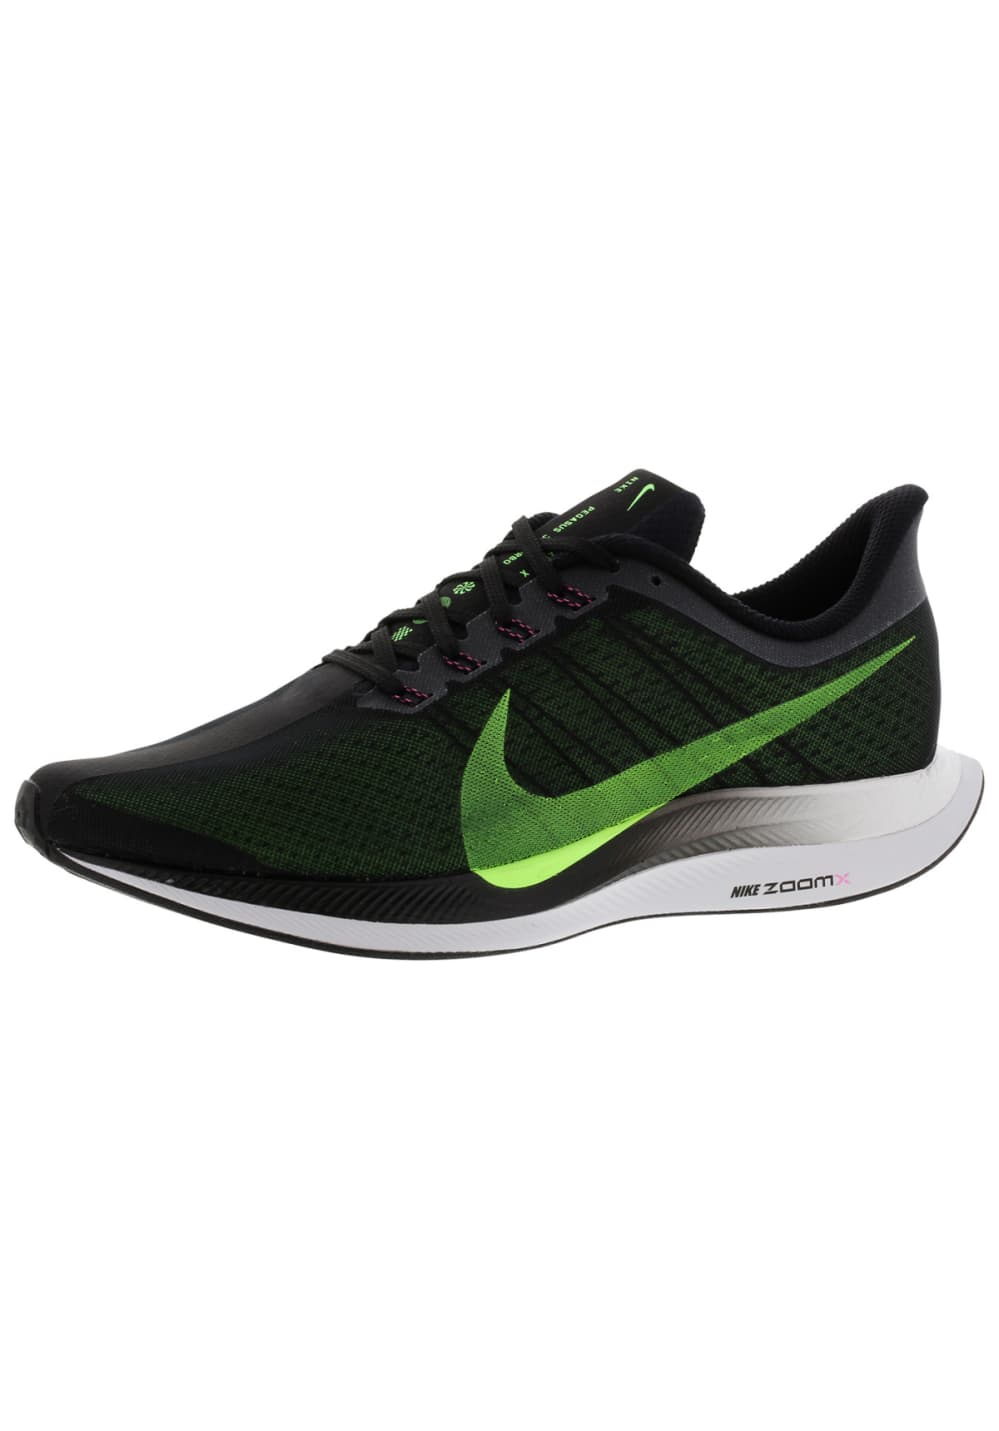 64d46565a1b07 Next. -60%. This product is currently out of stock. Nike. Zoom Pegasus Turbo  - Running shoes for Men